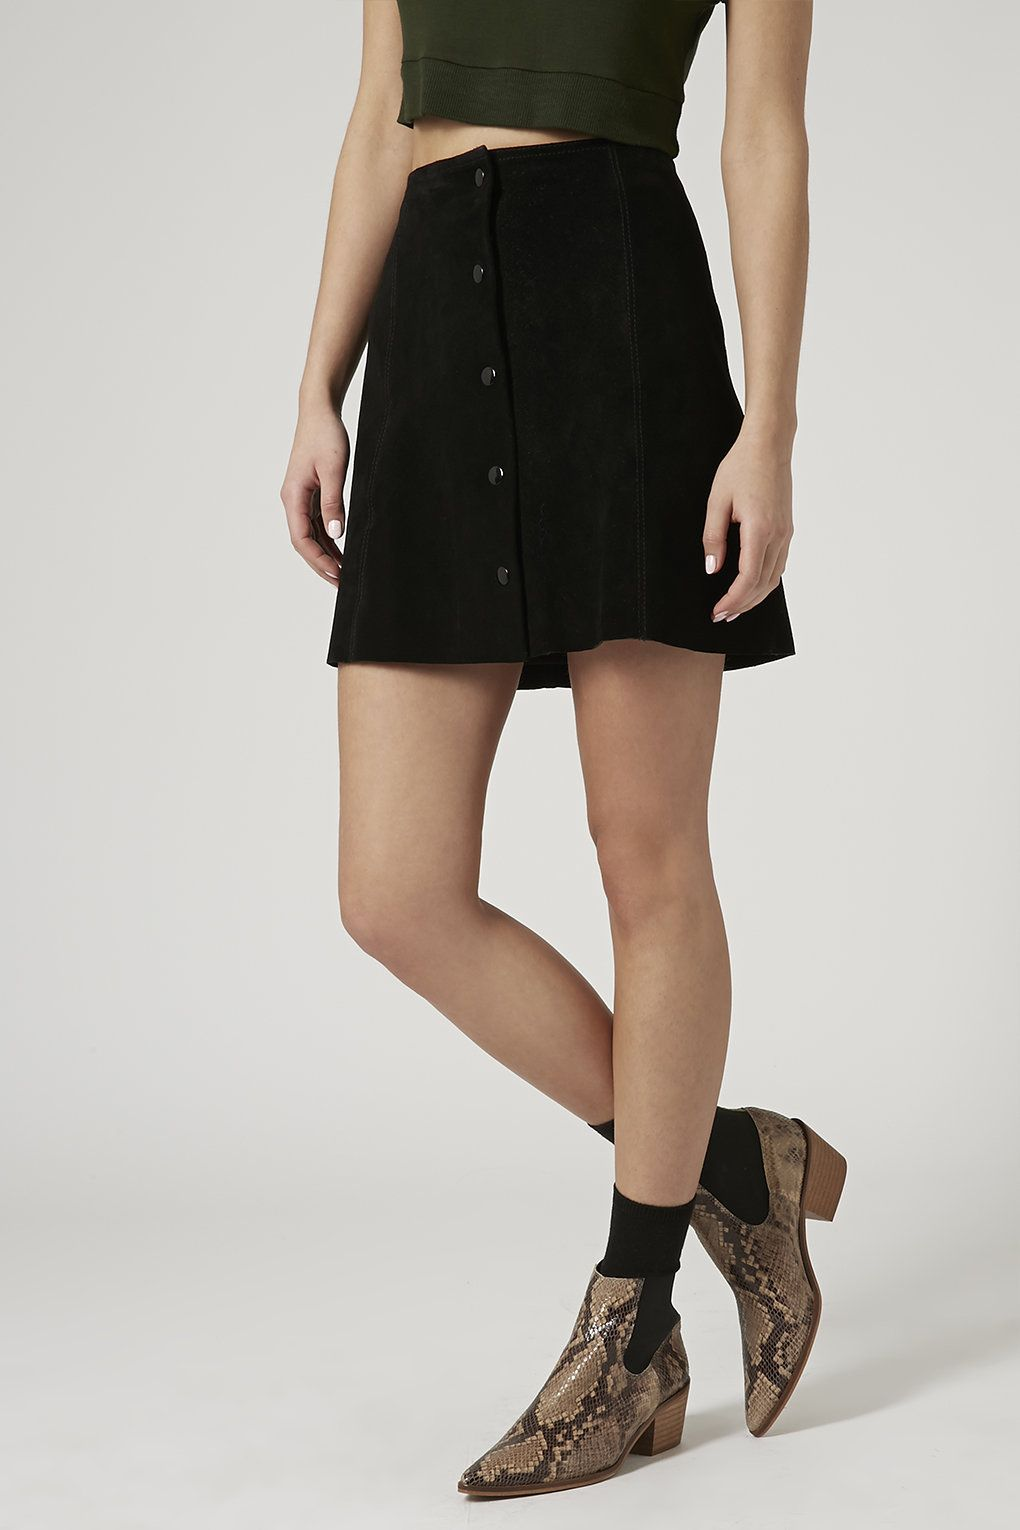 Suede Button Front A-Line Skirt | Skirts, Photos and Chang'e 3